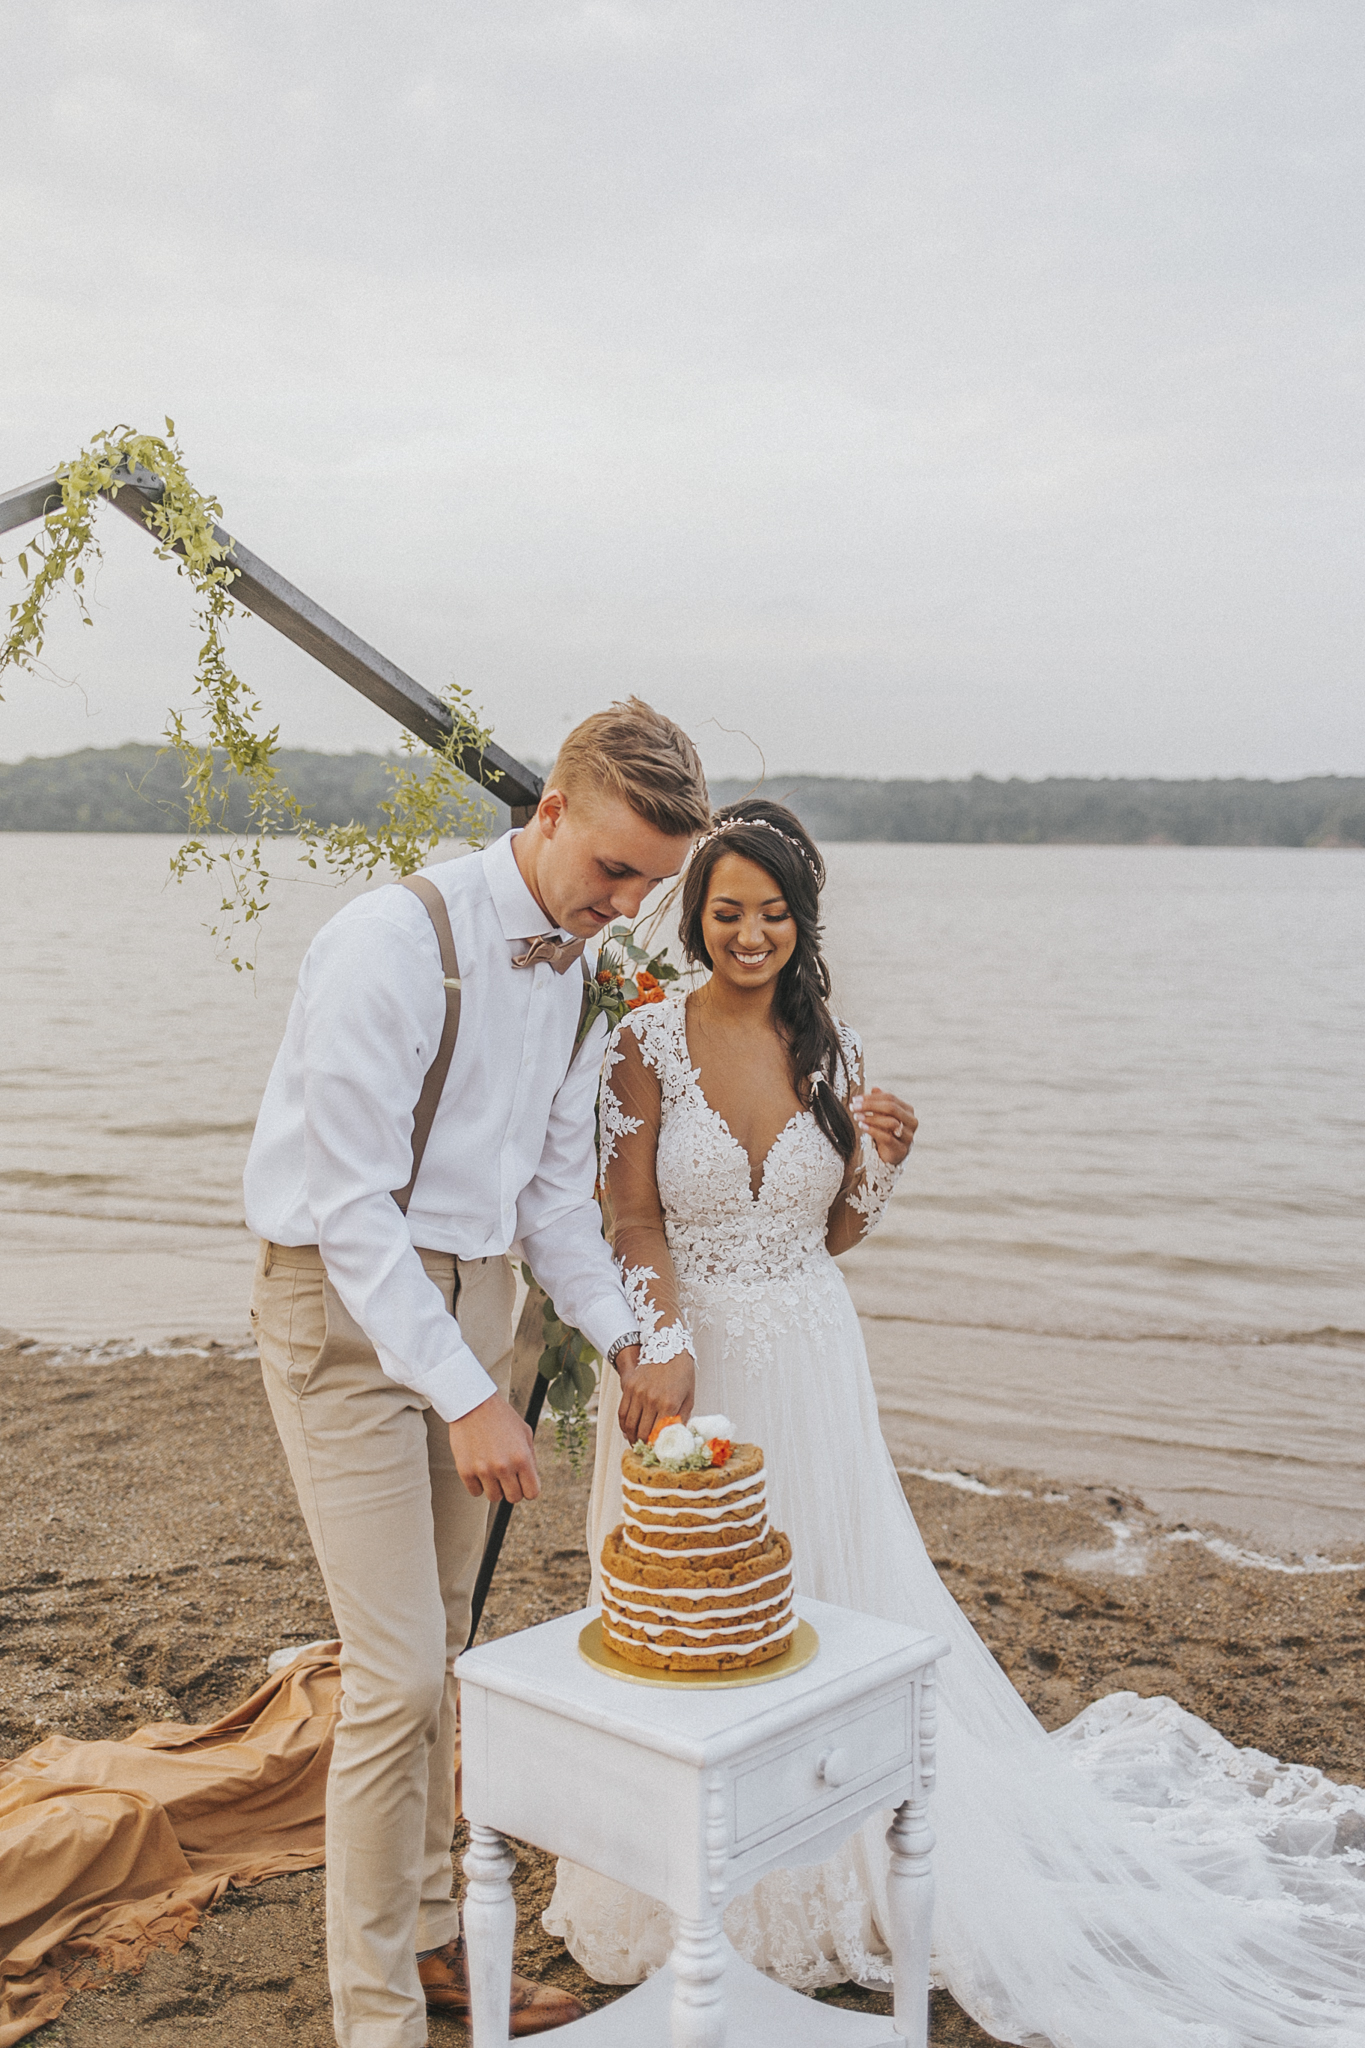 East Fork Lake Boho Elopement by Bare Moments Photography // cincinnati wedding photography // cake cutting, cut the cake, wedding cakes,